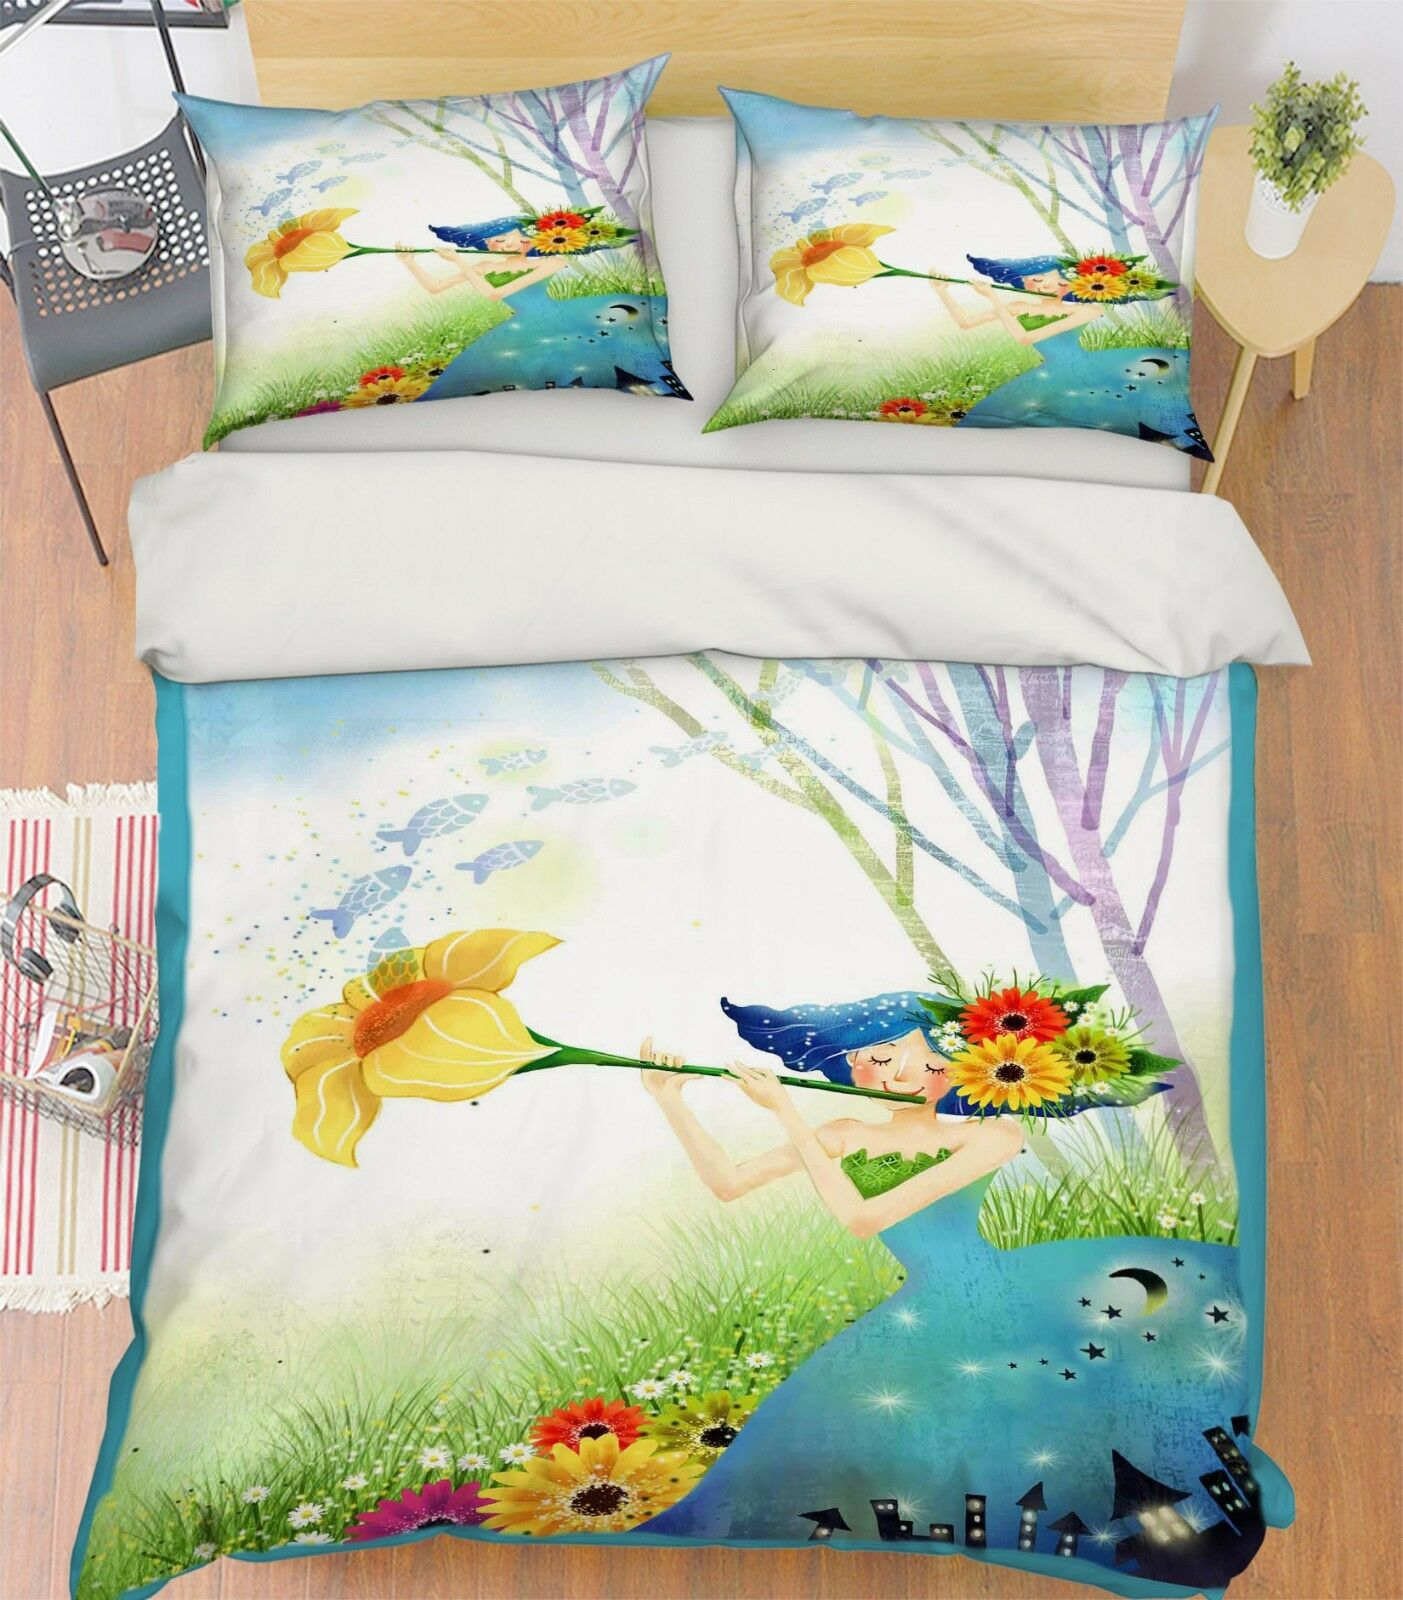 3D Meadow Flowers 88 Bed Pillowcases Quilt Duvet Cover Set Single Queen AU Carly